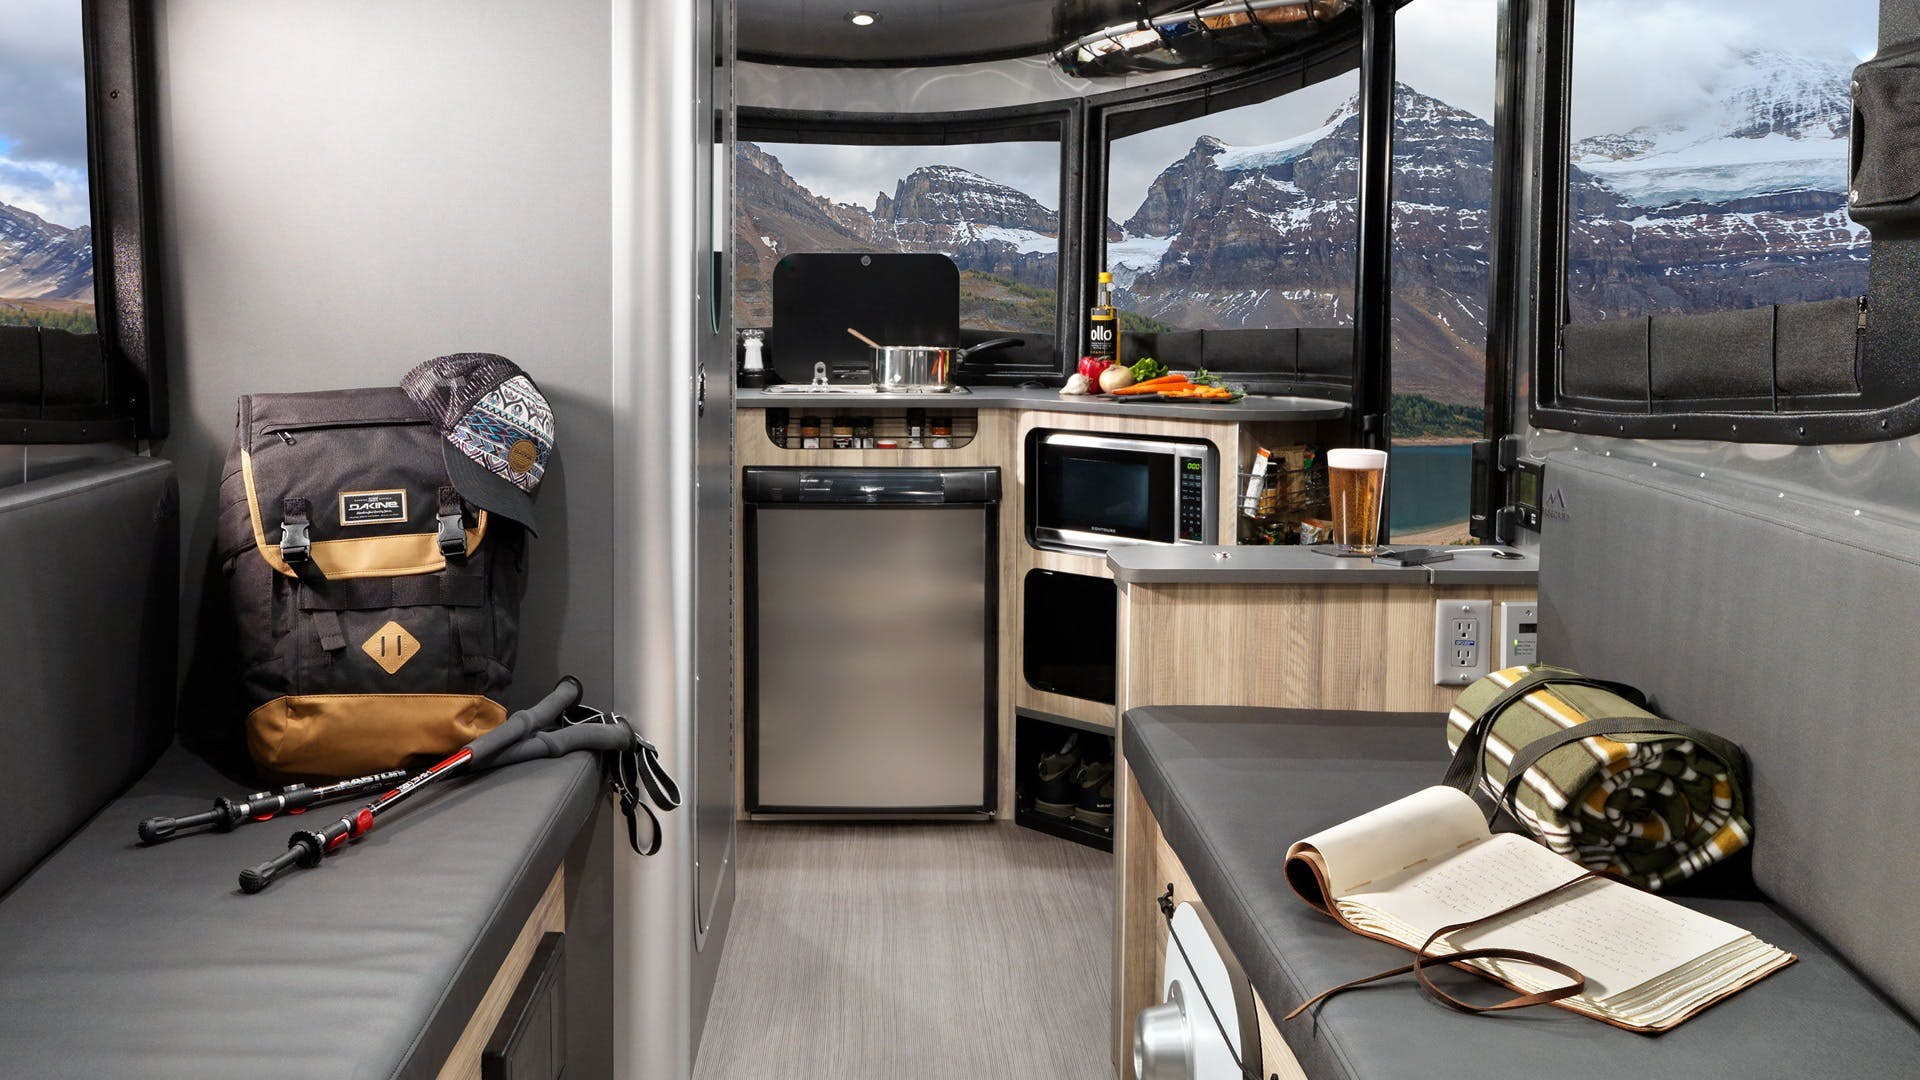 Basecamp-Sub-Features-SimpleContent-Kitchen-1-WideView